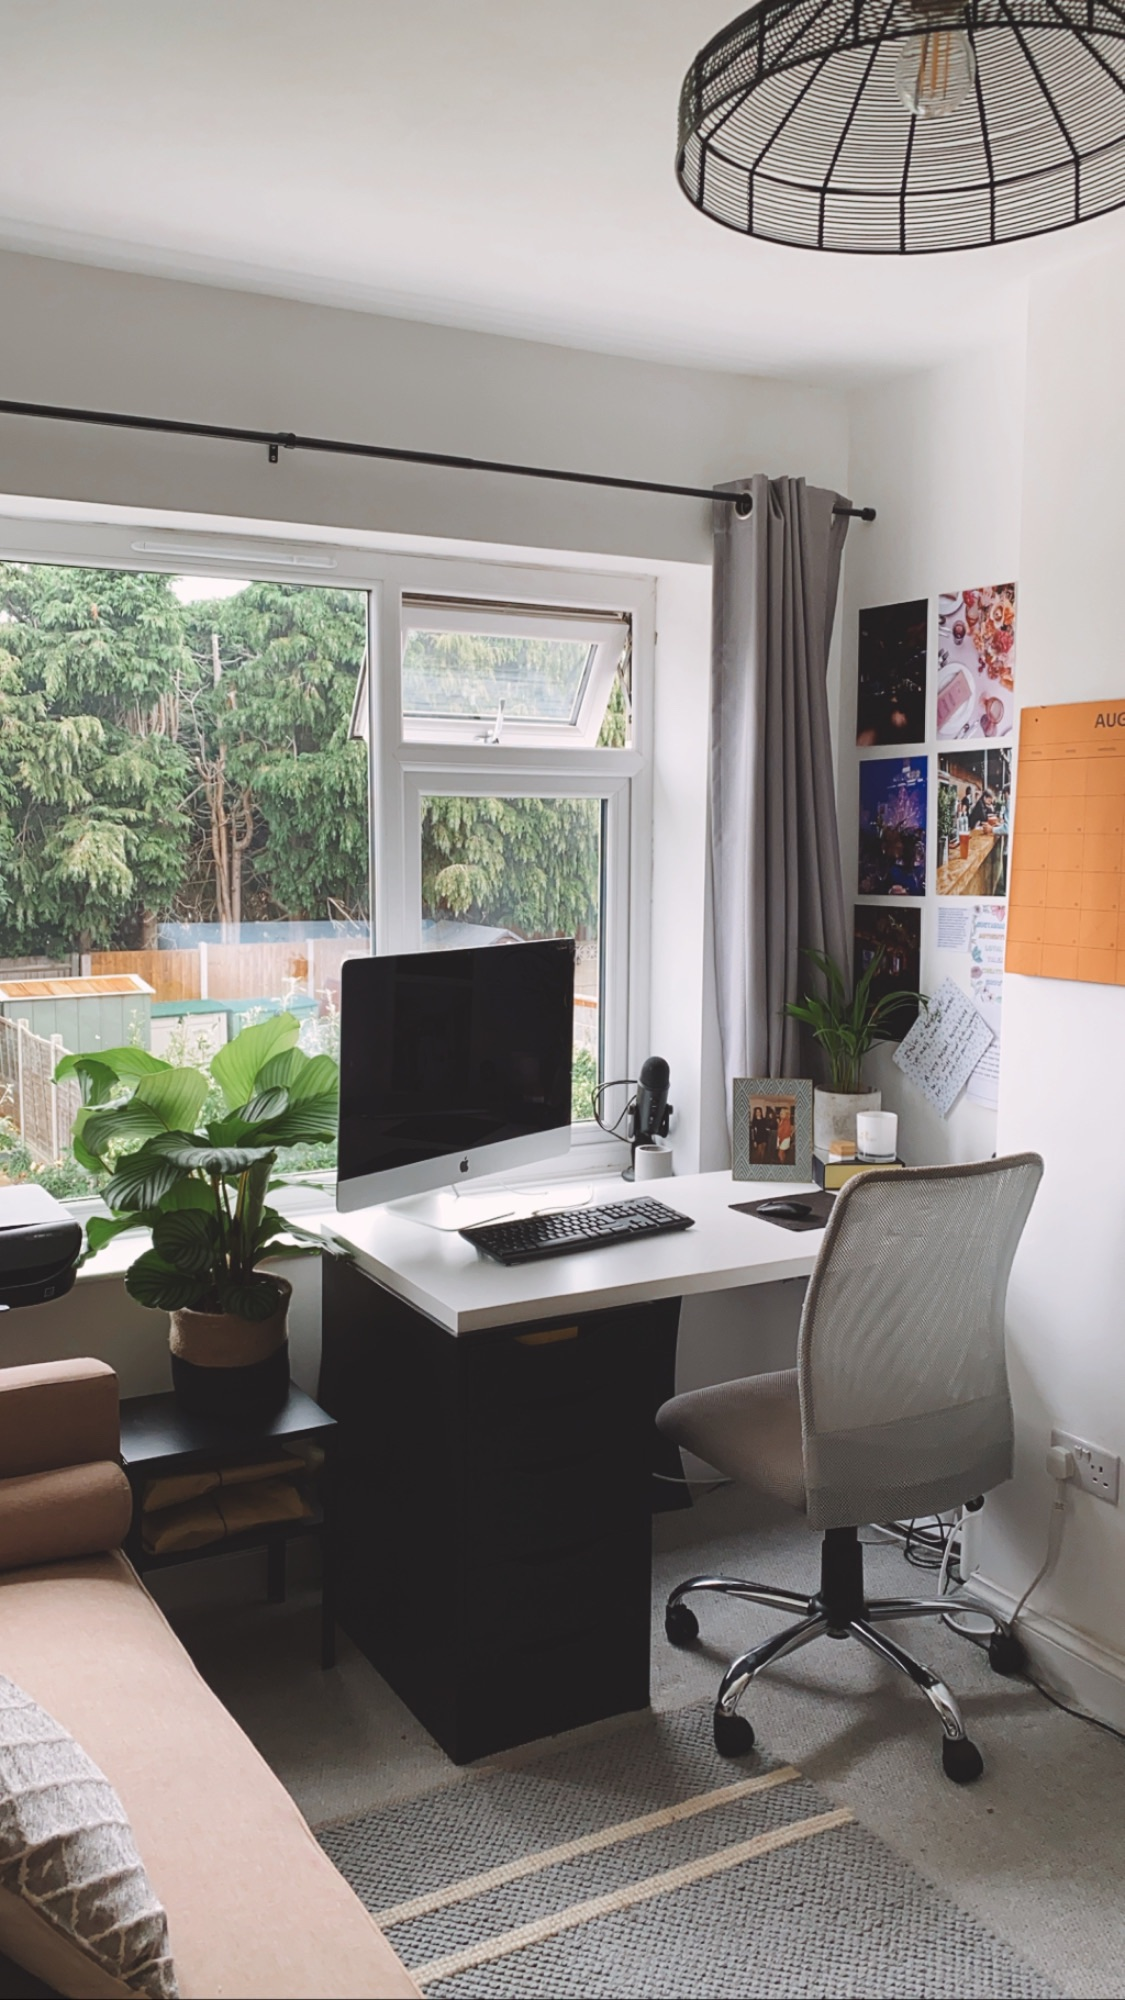 working from home calming space